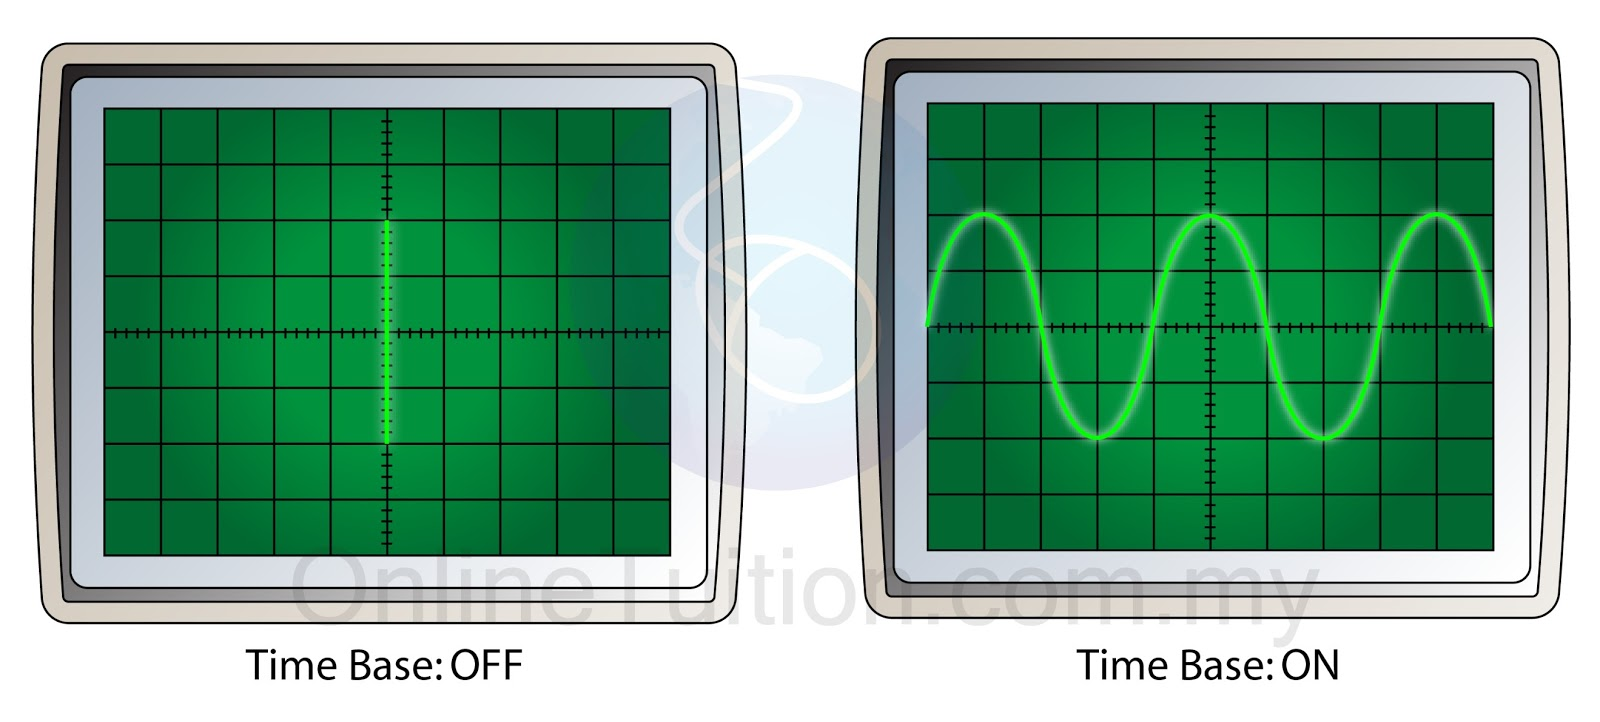 Uses Of Cathode Ray Oscilloscope Measuring Potential Difference Diagram Below Shows The Cro Display When Time Base Is On And Off